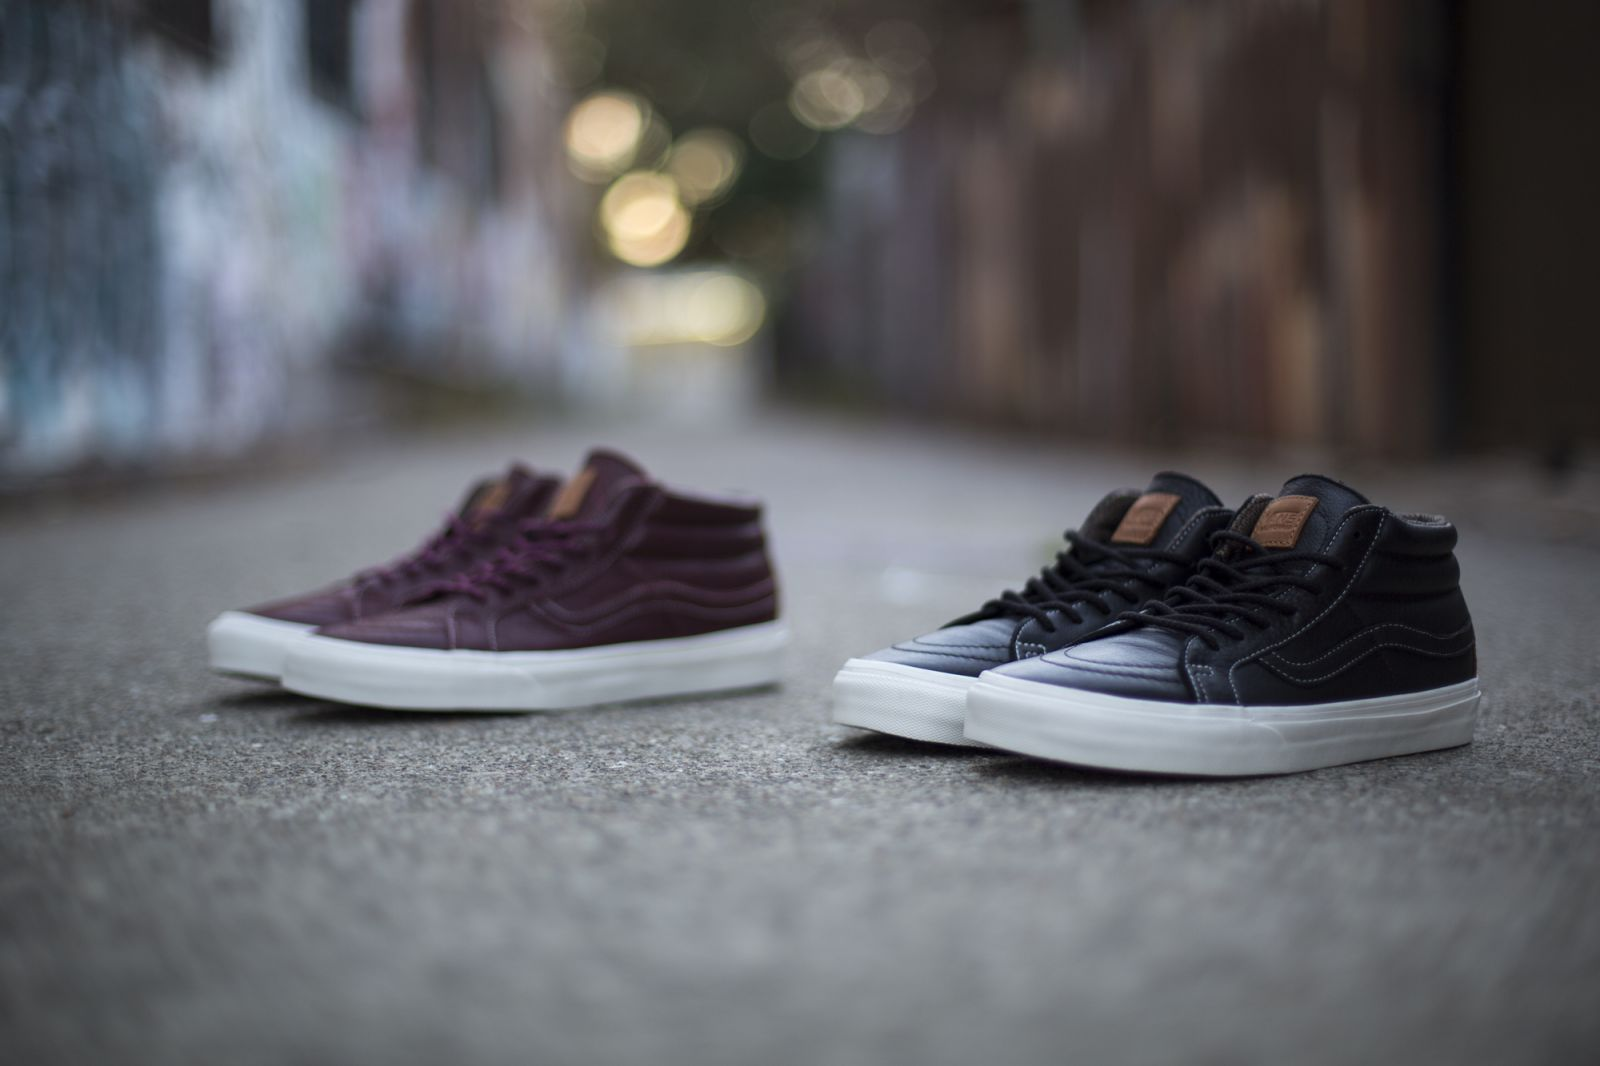 9ea4372de4e359 The Sk8 Hi Mid Waxed Leather Pack is available now from select Vans  California retailers